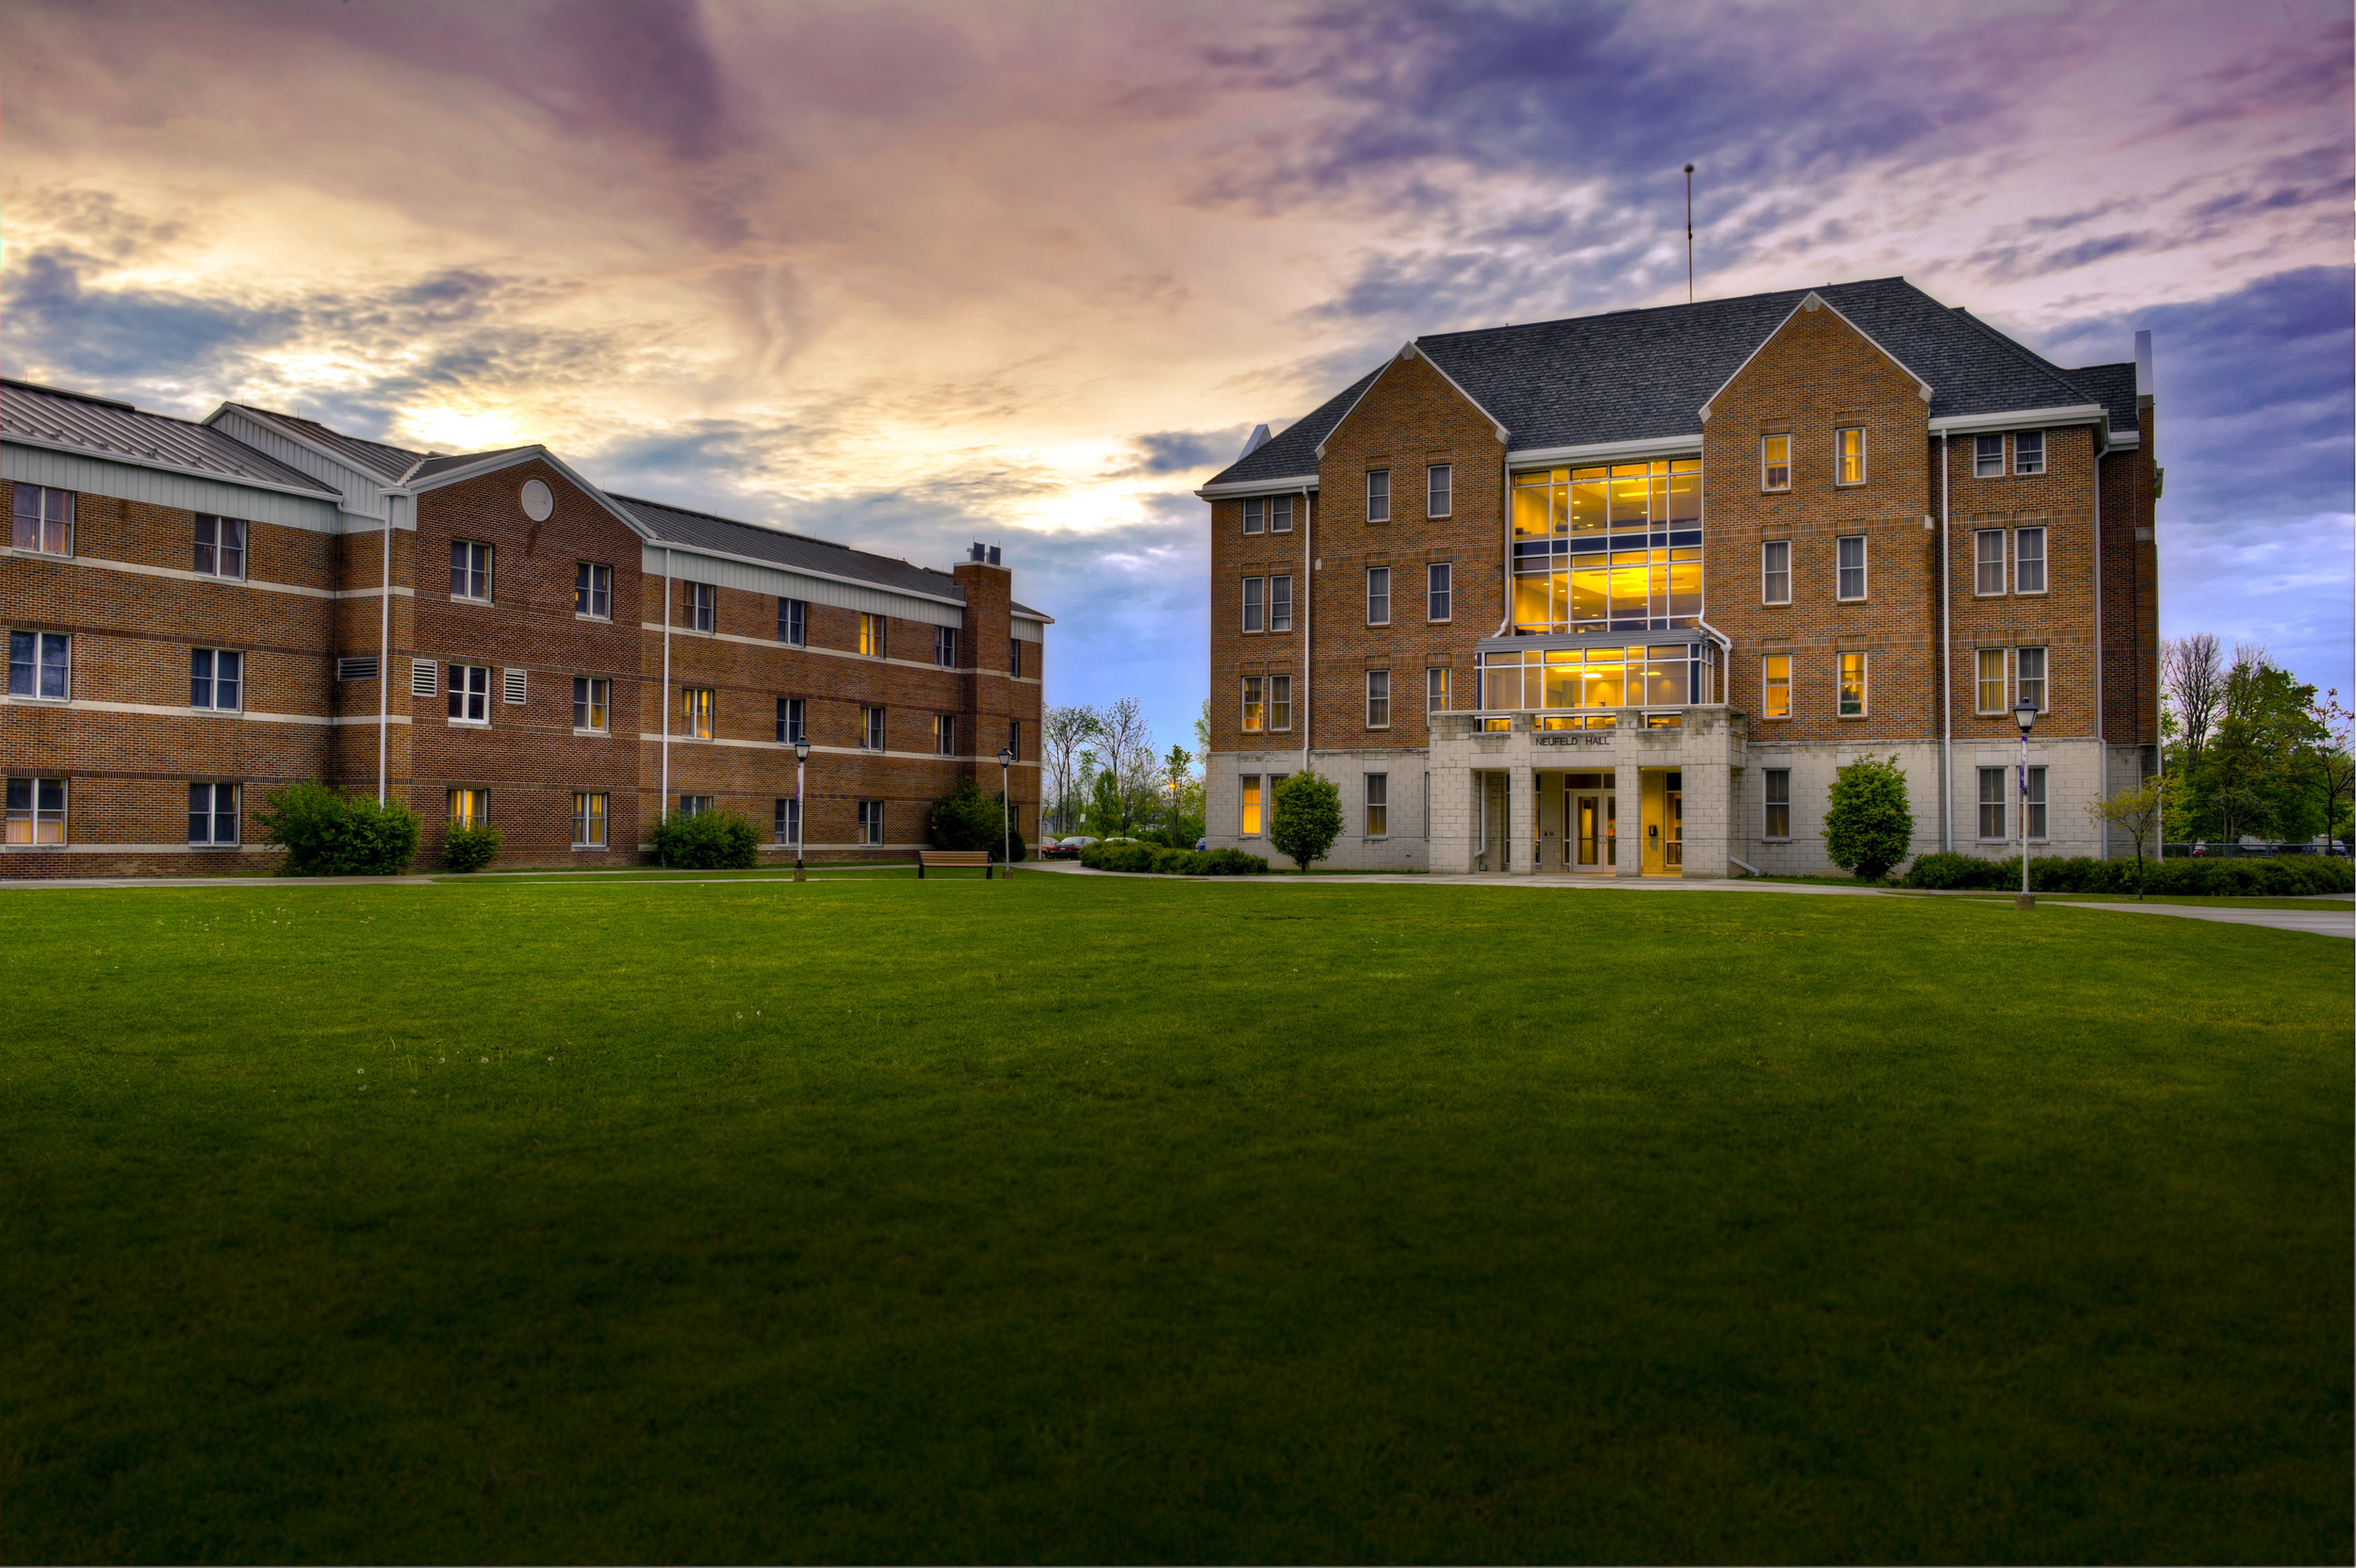 www.rcmarchitects.com - bluffton university - campus master plan (4)